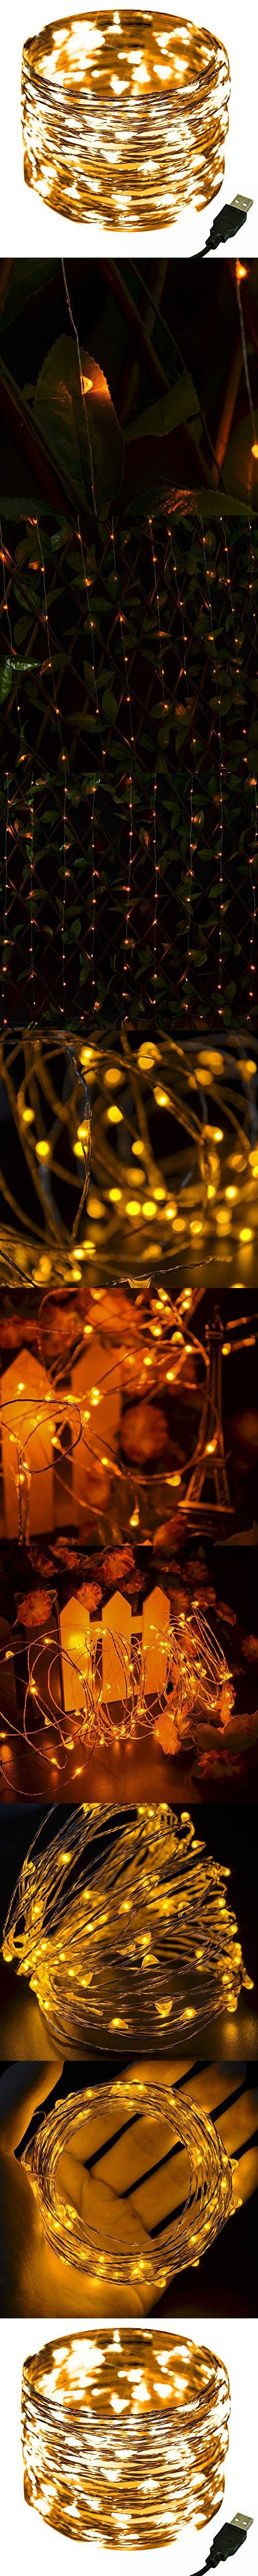 LED Decorative String Light,CrazyFire Yellow Copper Wire Starry Light Strings Dcor Rope Light for Indoor and Outdoor Decor,Home Garden, Xmas Festival Party Decorations